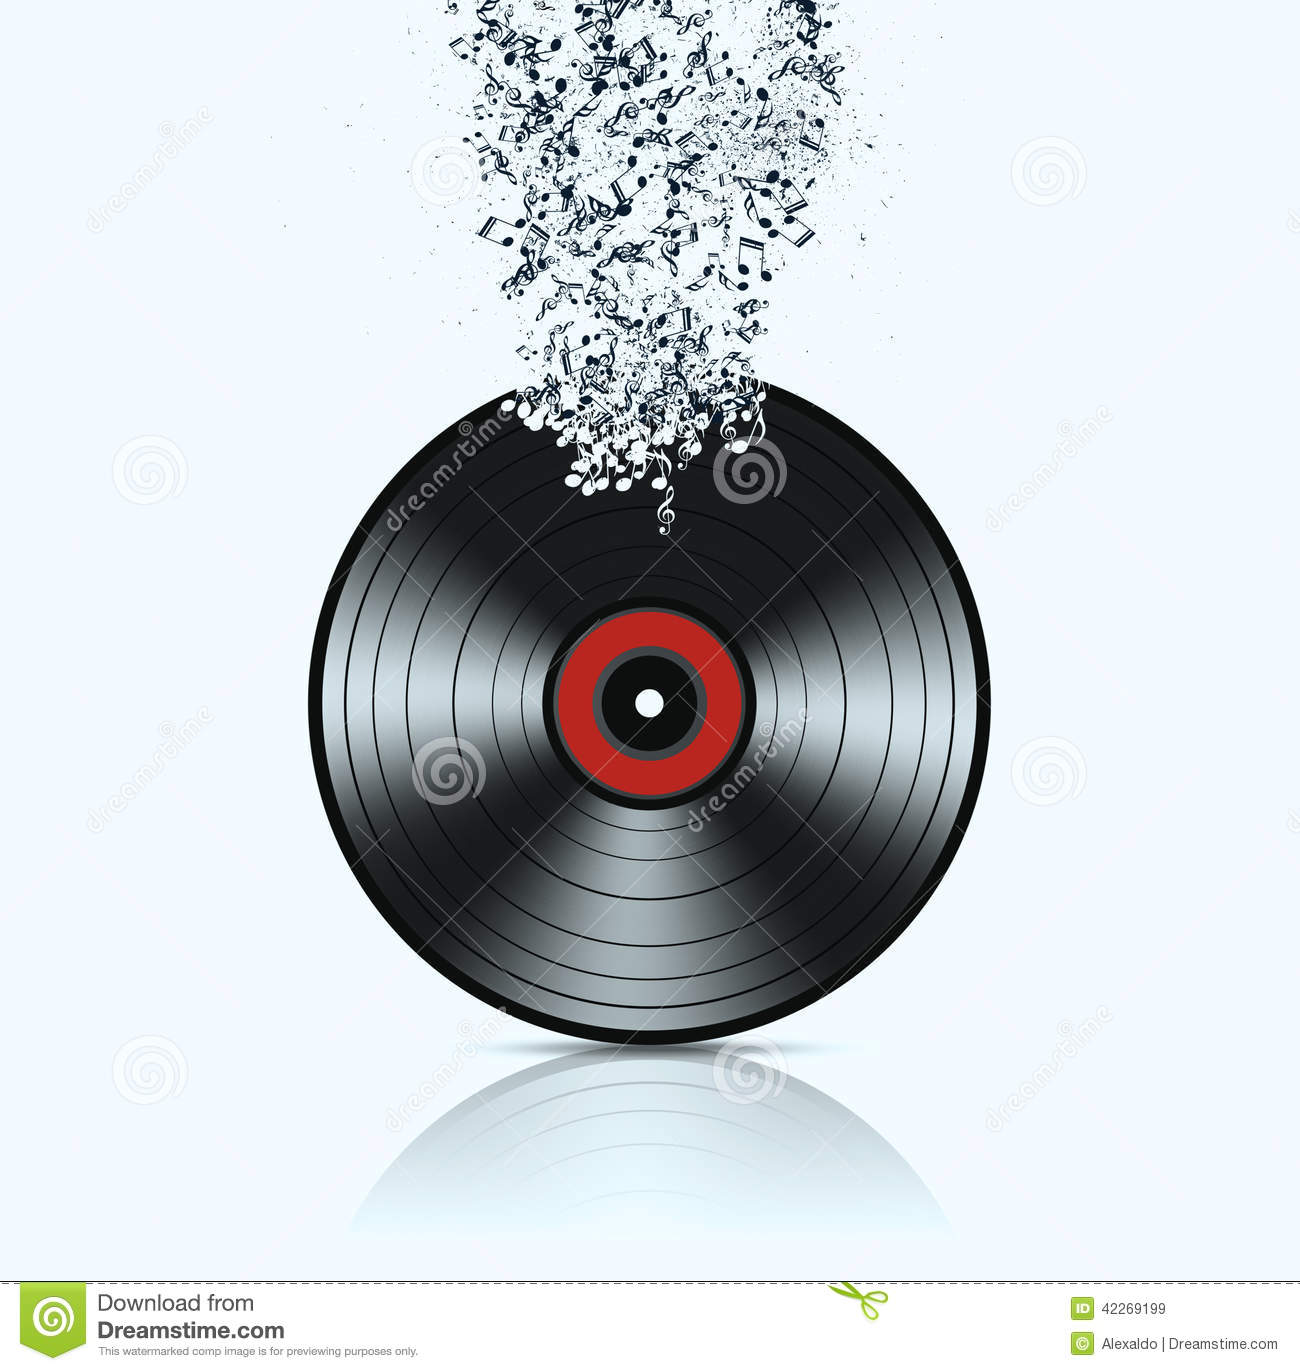 Musical Vinyl Wallpaper: Vinyl Background With Music Notes Stock Photo